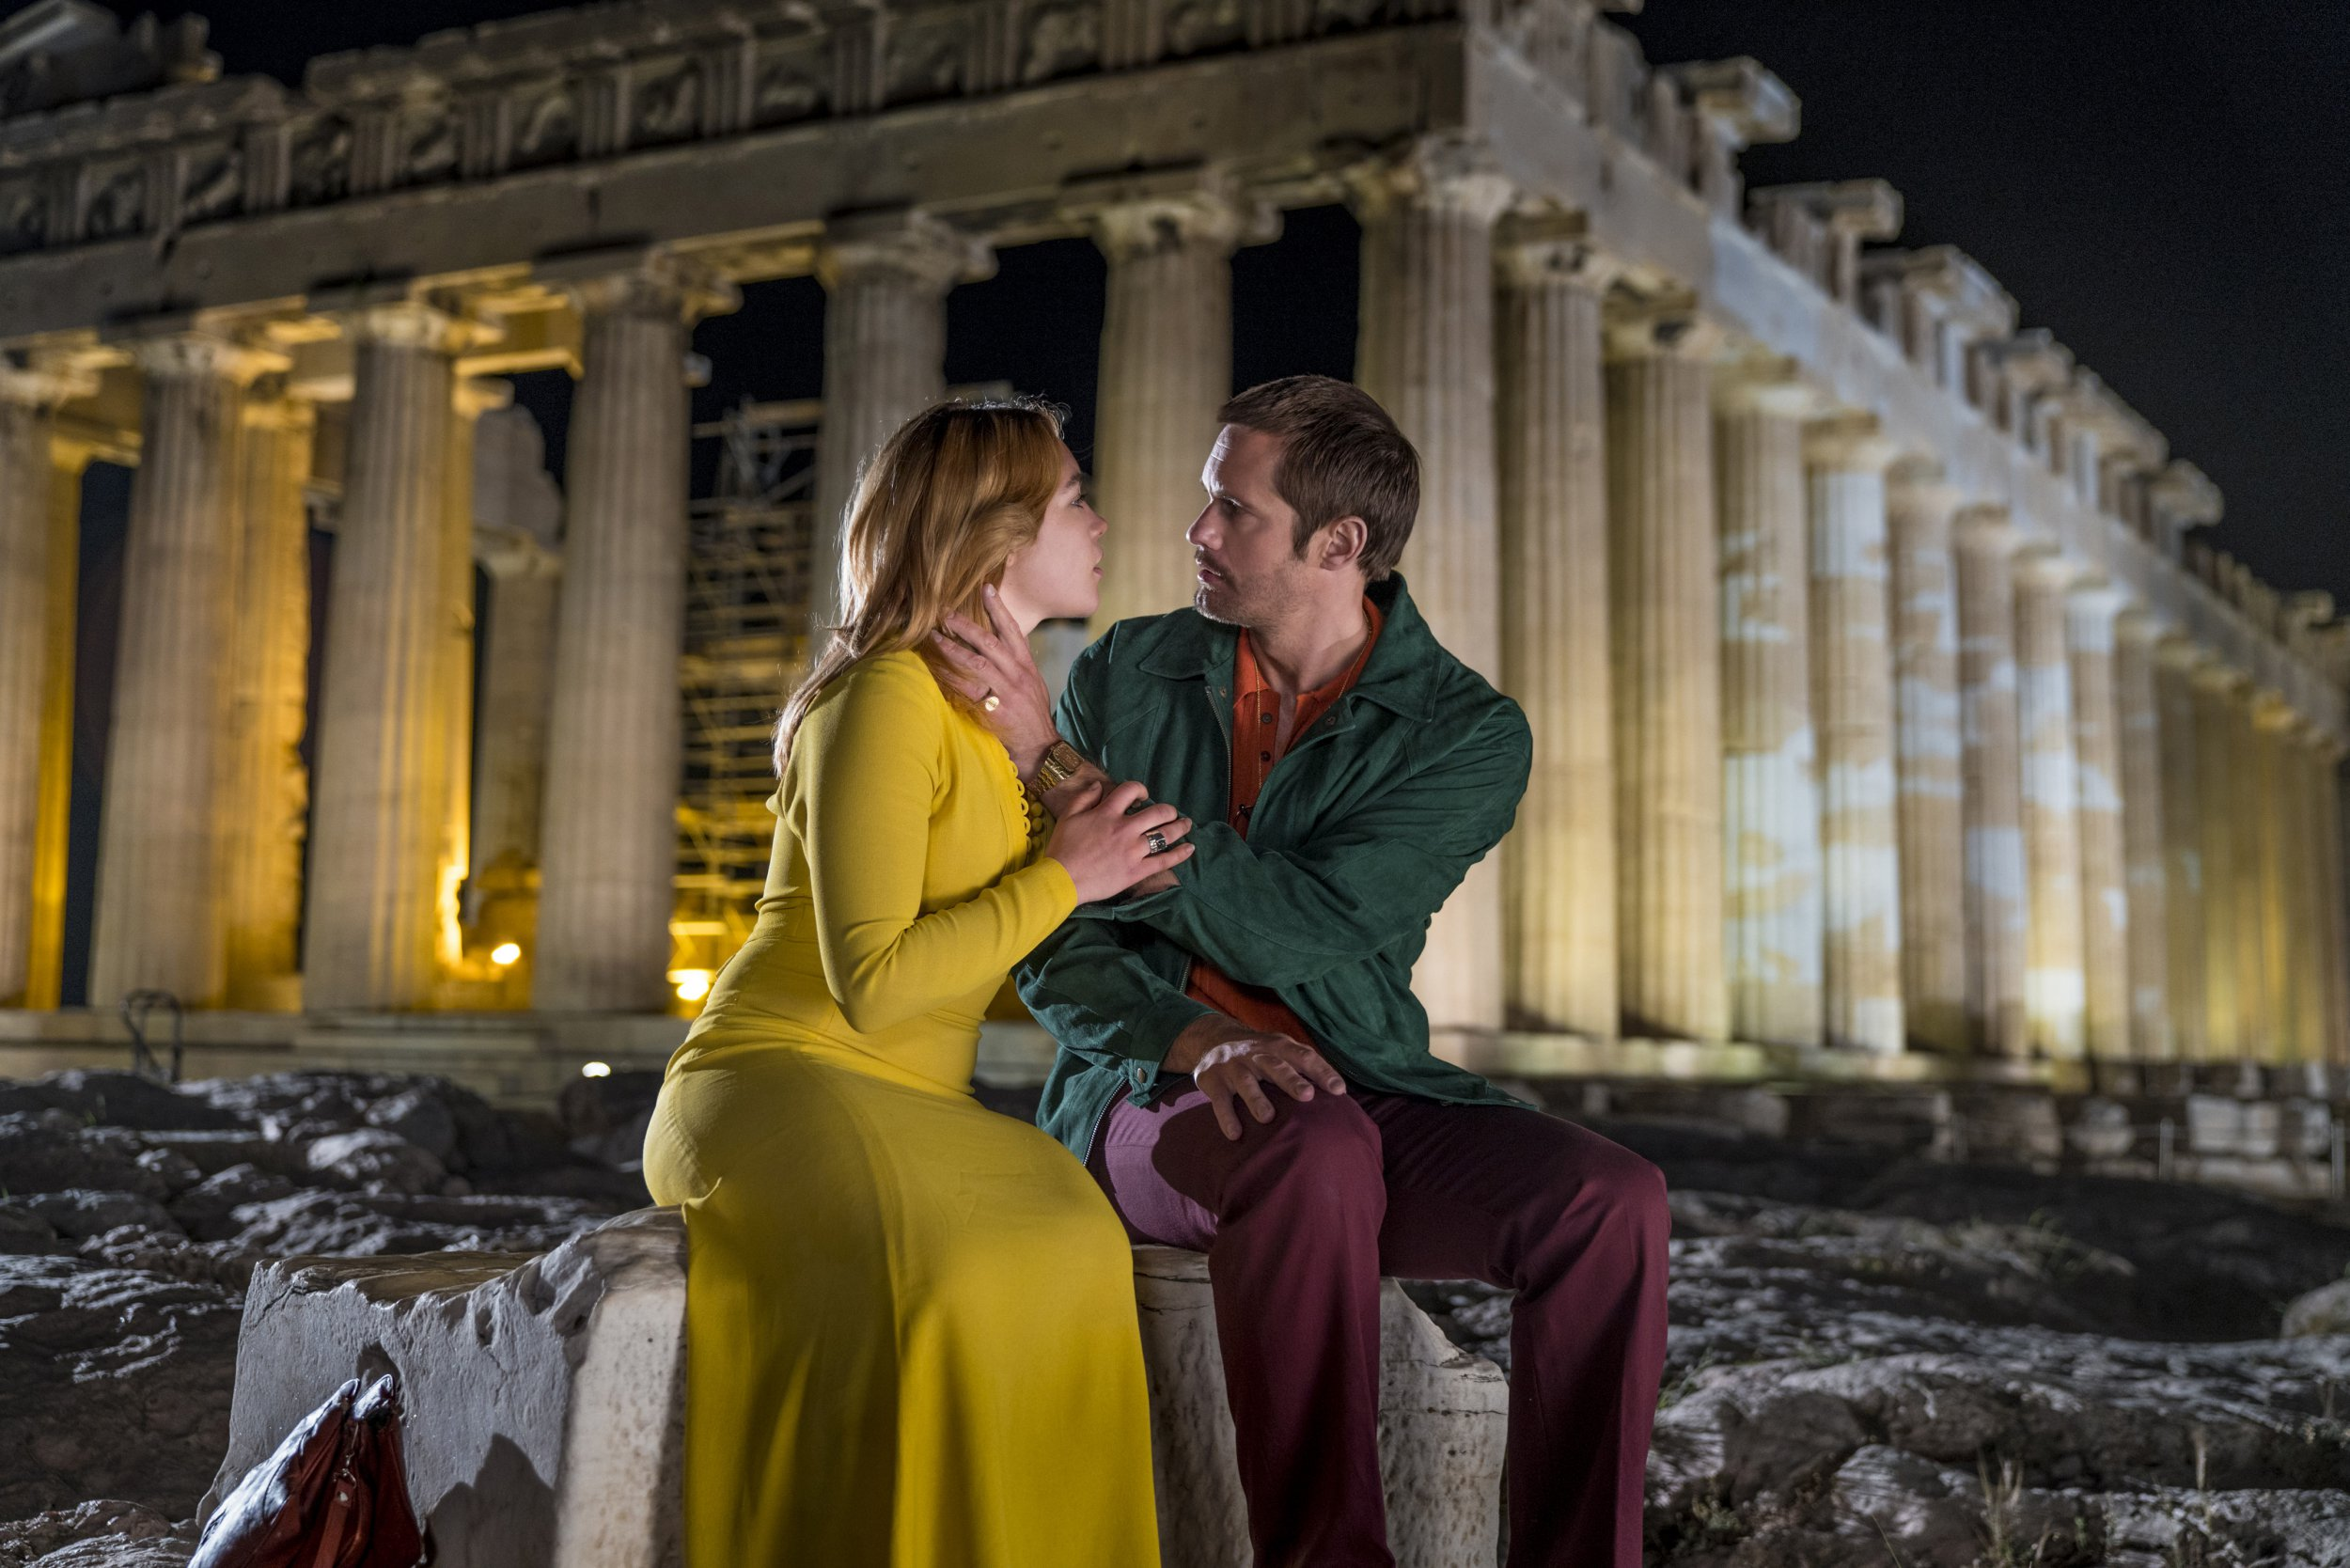 TELEVISION PROGRAMME: The Little Drummer Girl - TX: n/a - (L-R) Charlie (FLORENCE PUGH), Becker (ALEXANDER SKARSGARD) - Episode: Early Release (No. n/a) - Picture Shows: *EMBARGOED FOR PUBLICATION UNTIL 23:15:01 ON SATURDAY 28TH JULY 2018* (C) The Little Drummer Girl Distribution Limited. - Photographer: Jonathan Olley